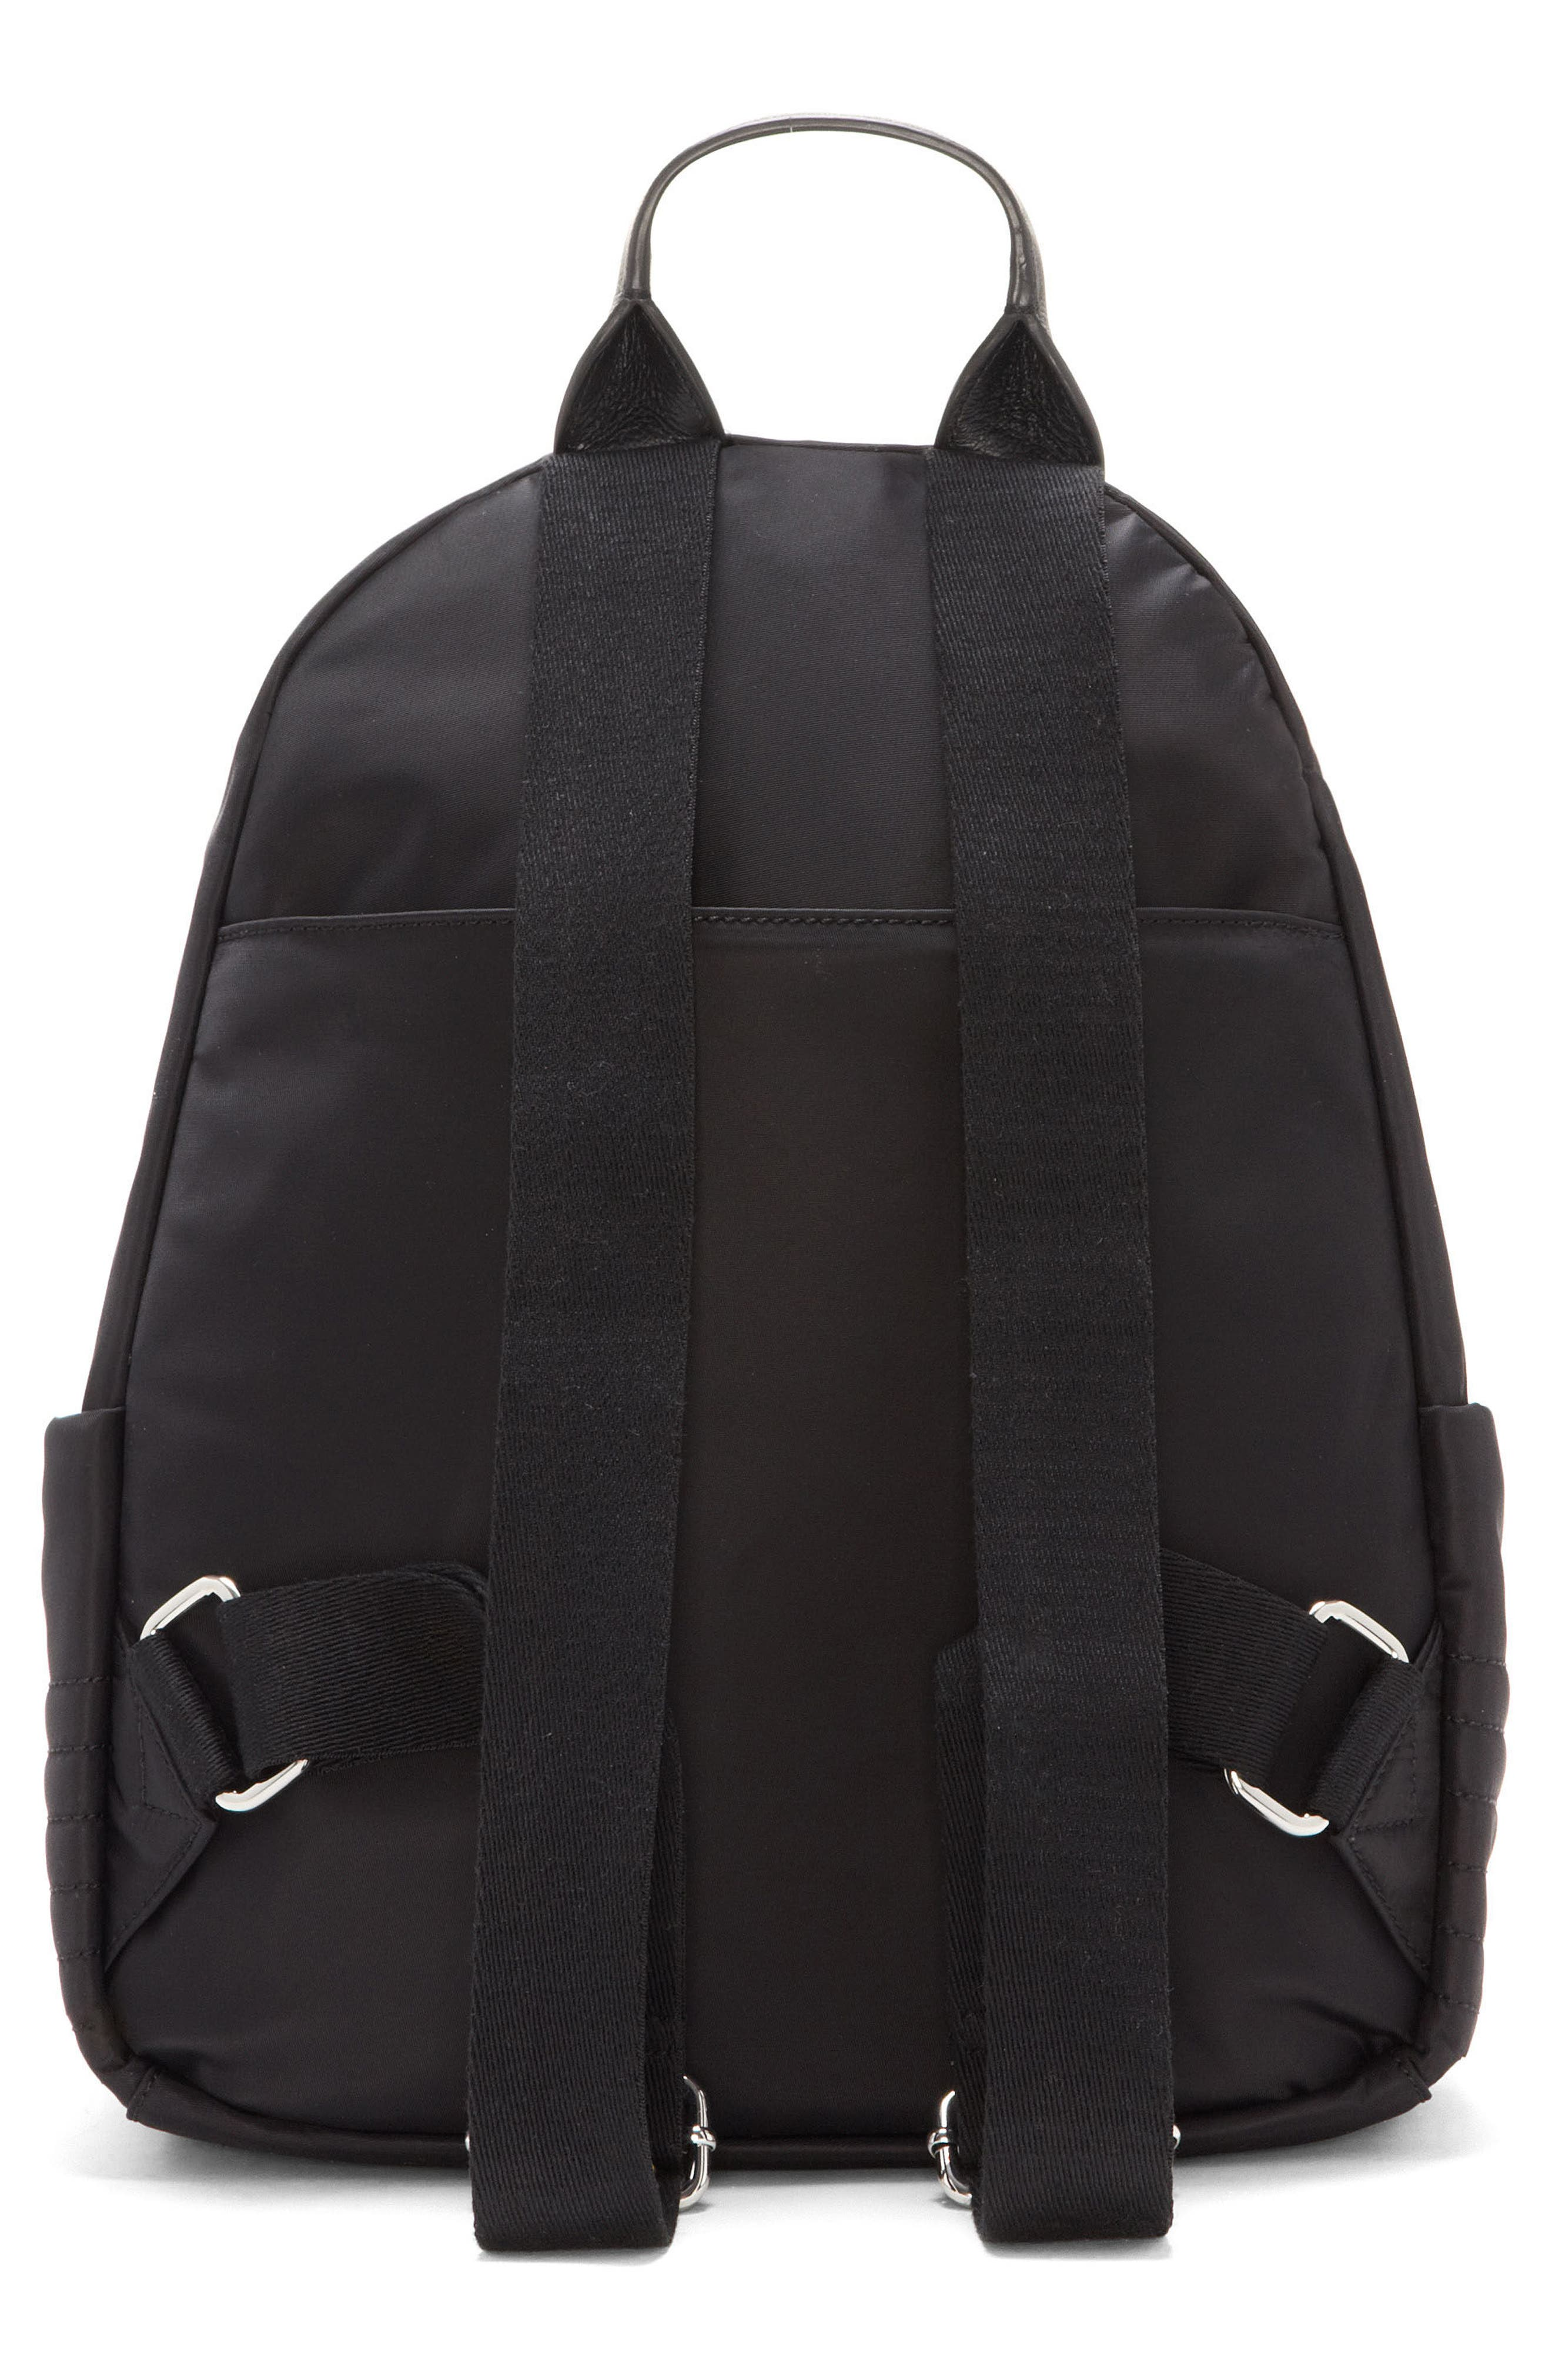 Action Nylon Backpack,                             Alternate thumbnail 2, color,                             001